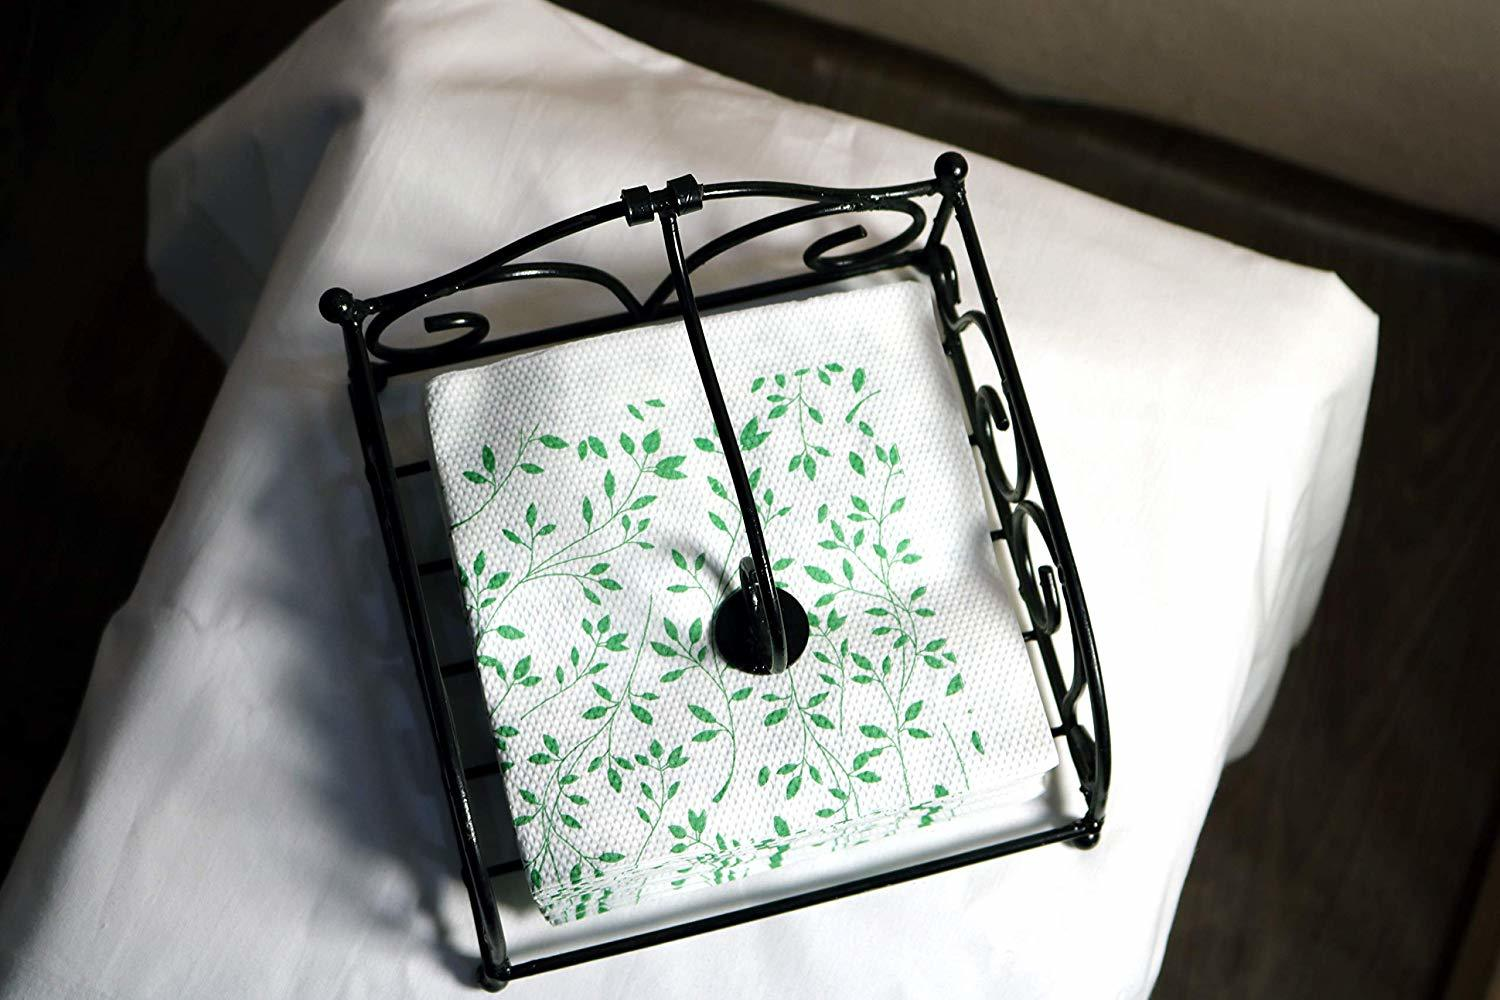 Handmade Iron Napkin Holder for Napkin and Tissue Papers Upto 6 inches